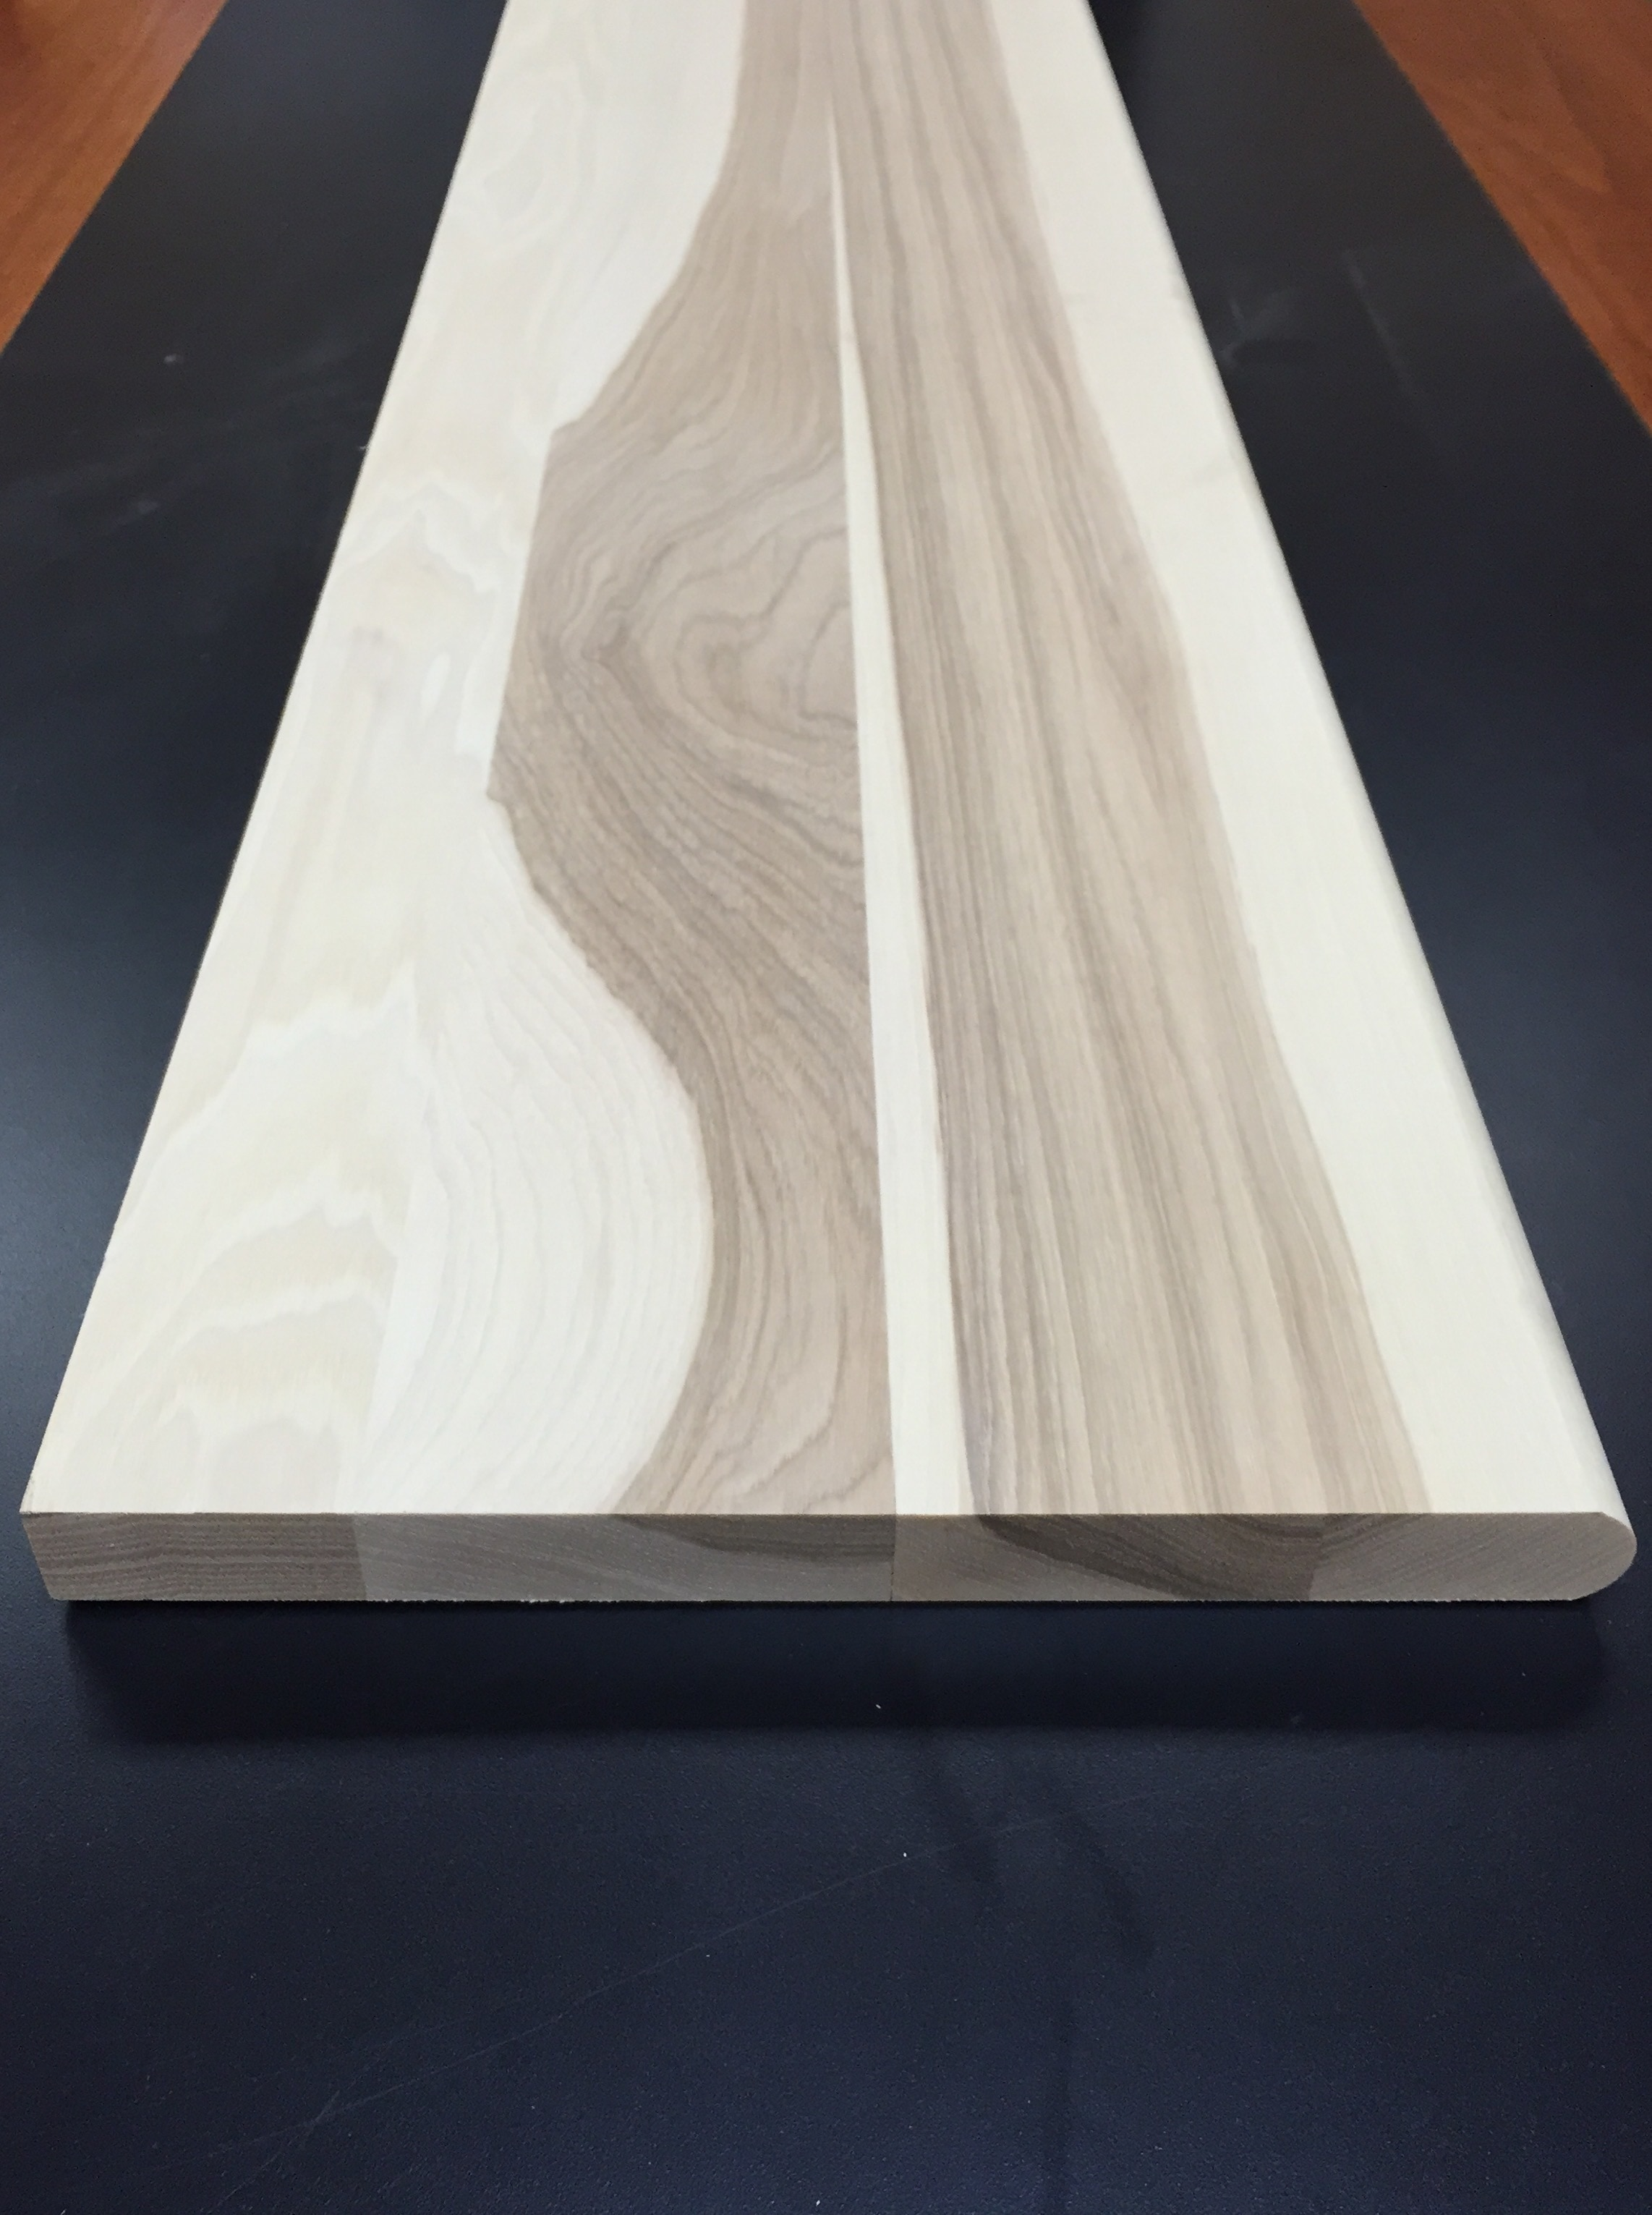 """Unfinished Stair Tread / Hickory / 1-1/16"""" X 60"""" / Tread Flooring Molding - Unfinished Hardwood Stair Tread 0"""